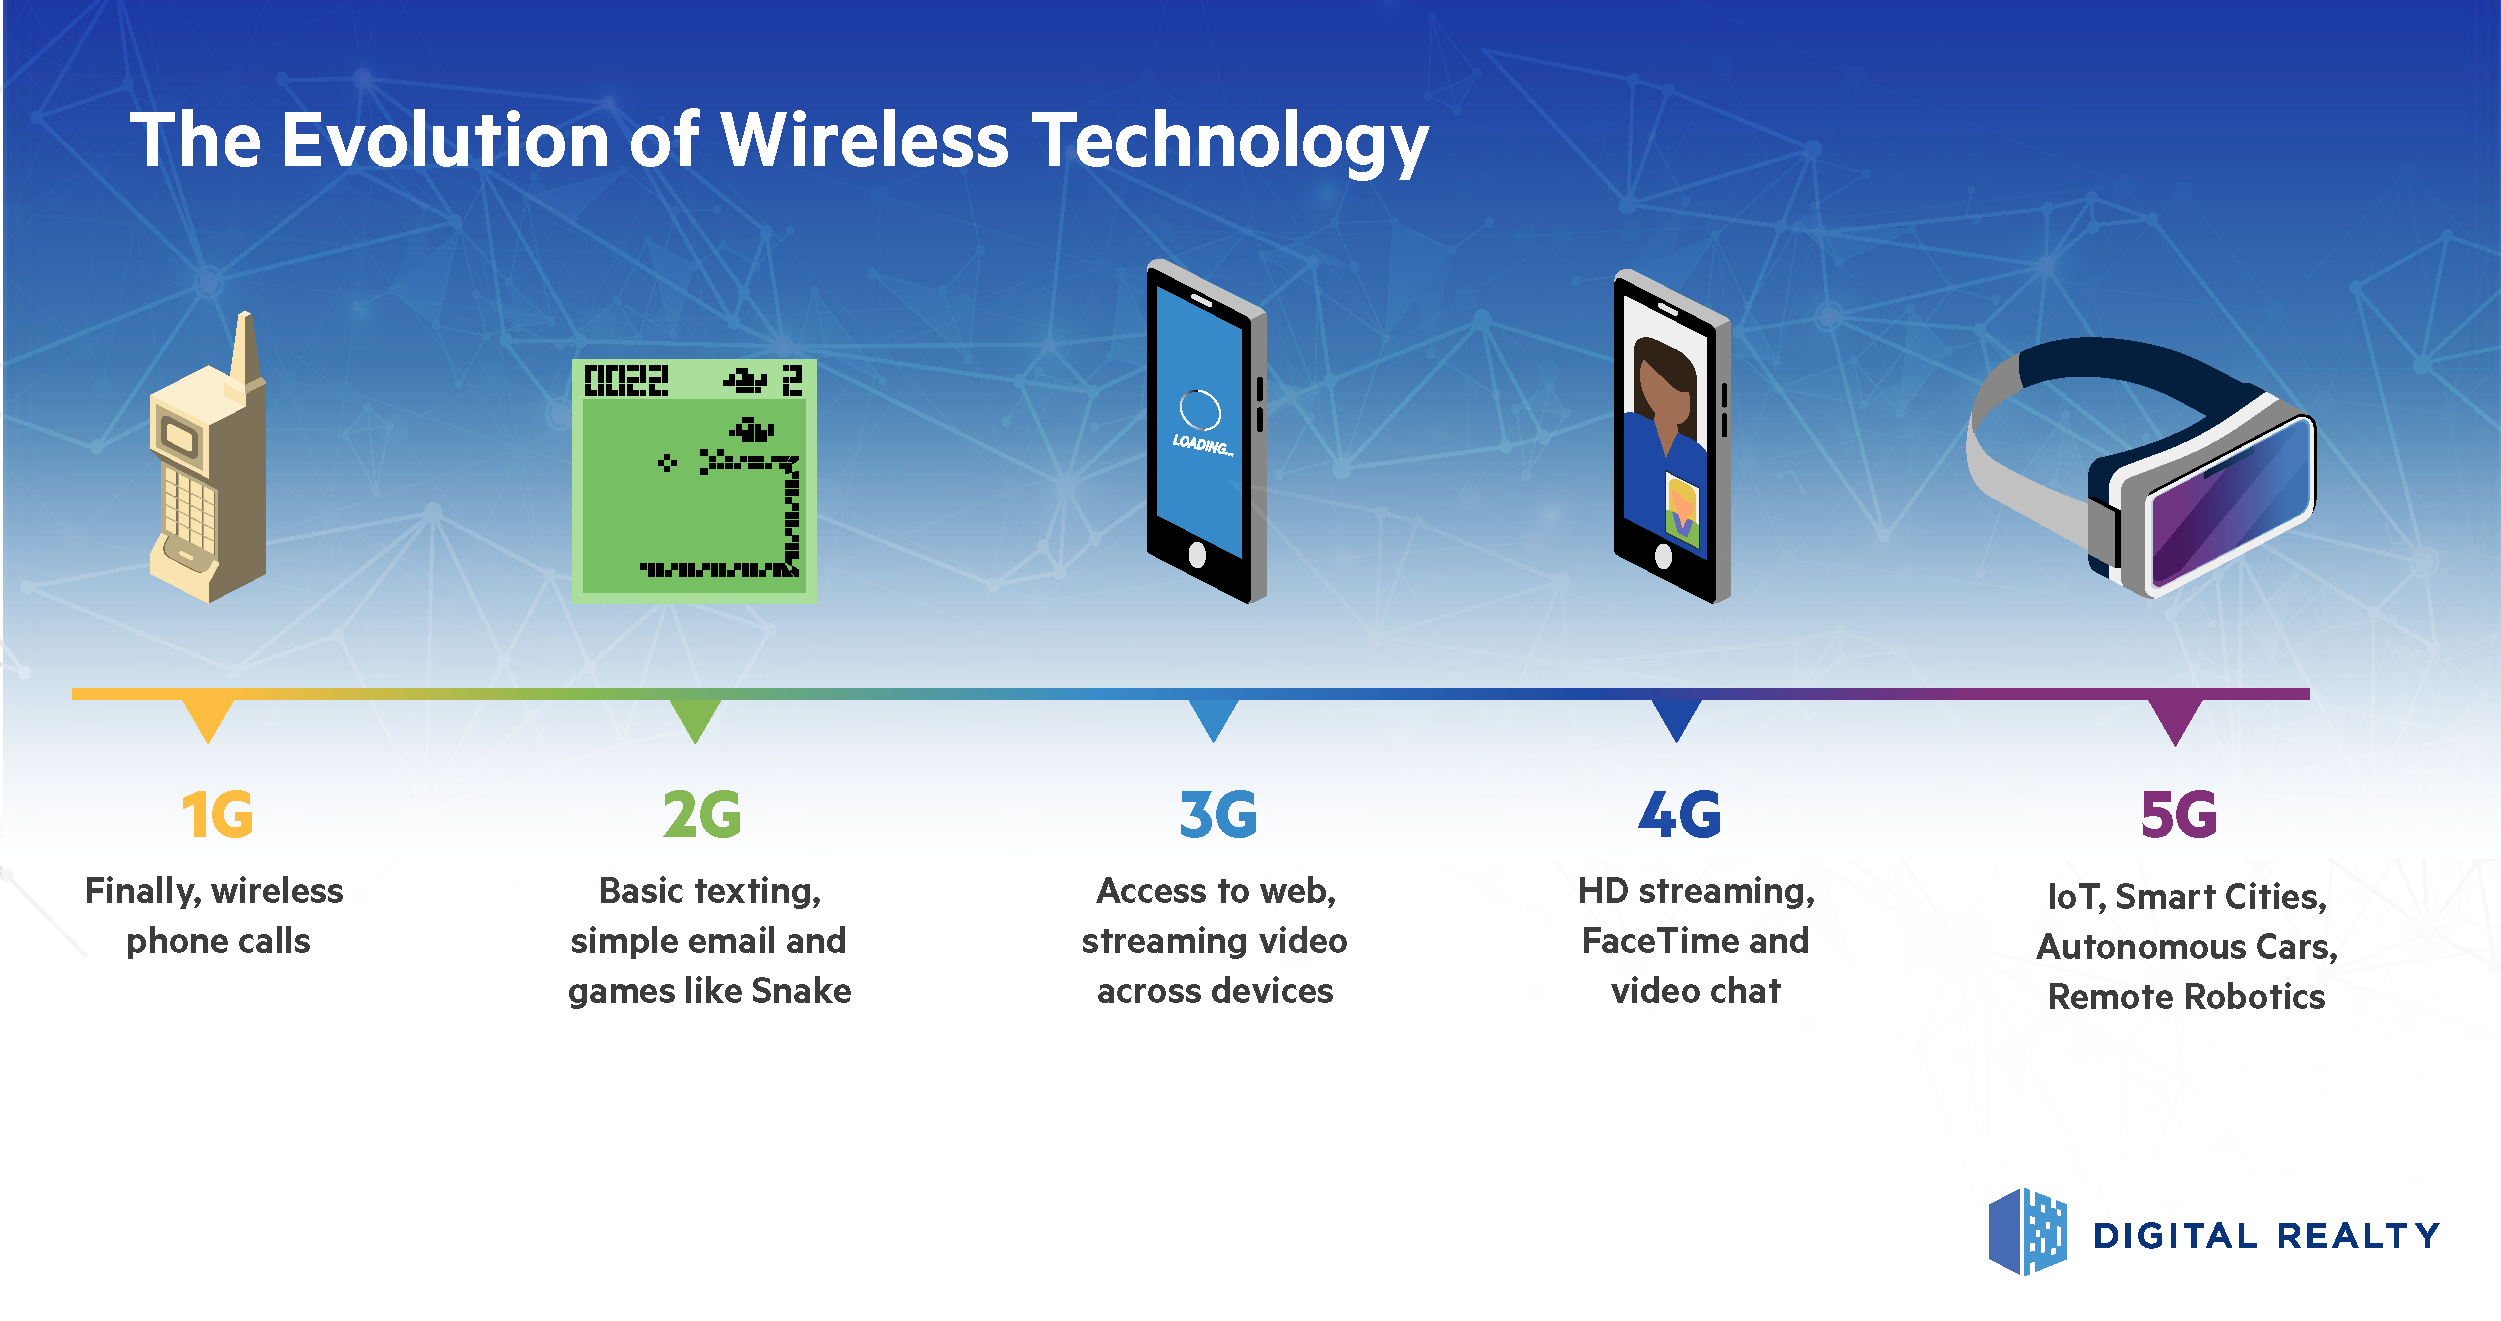 The Evolution of Wireless Technology Infographic